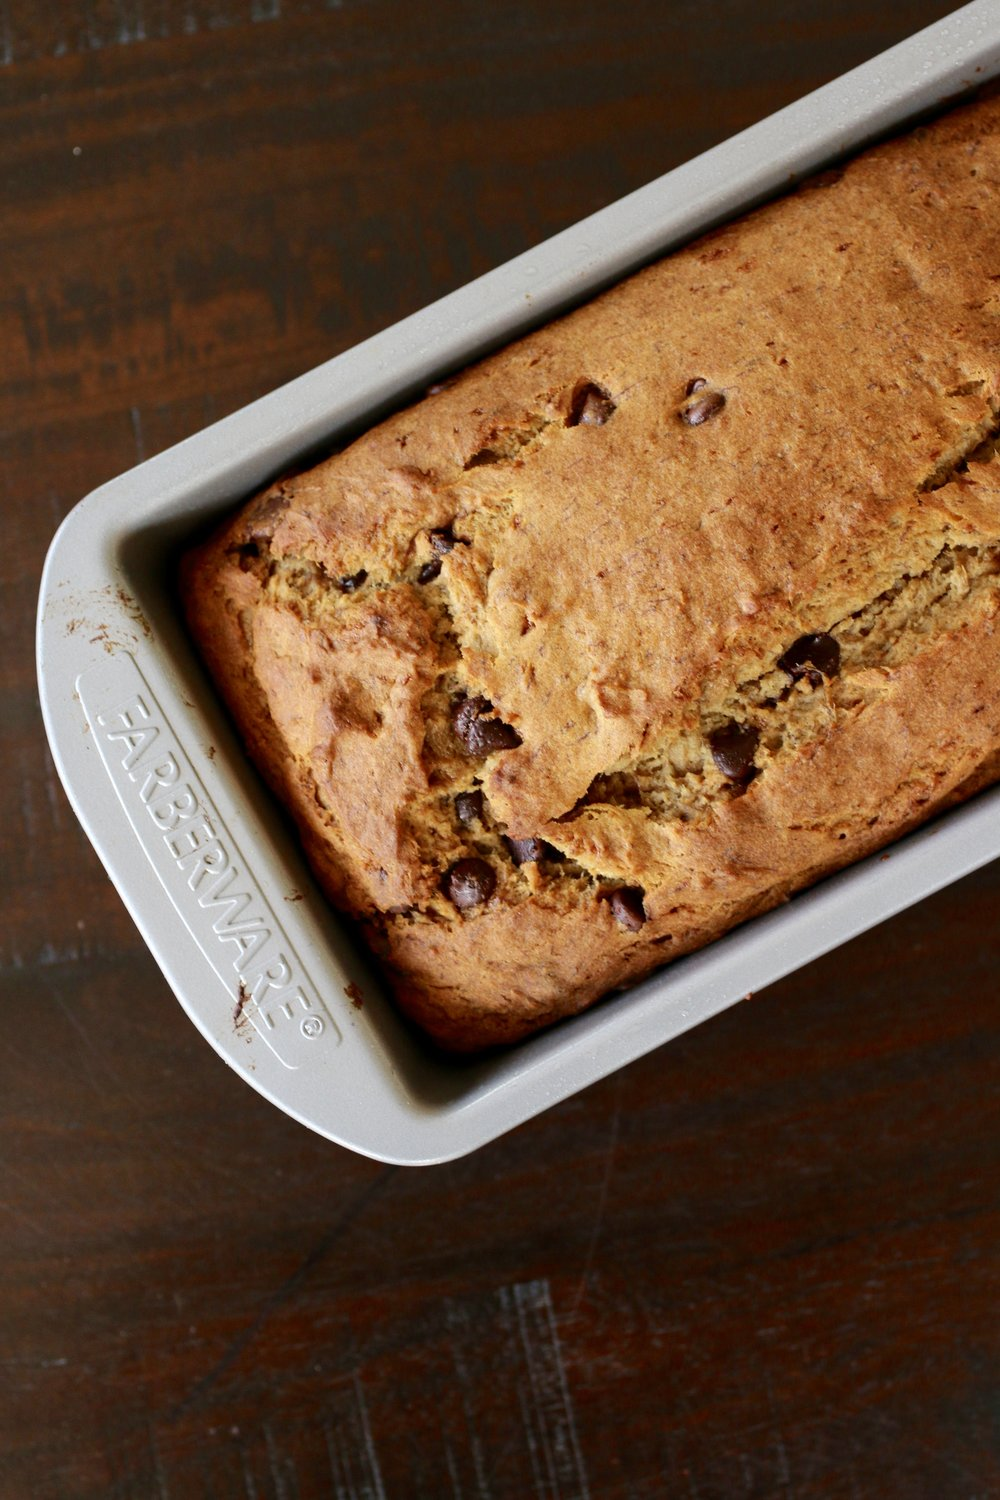 The Most Delicious Gluten Free Banana Bread! | www.barbellsandbaking.com